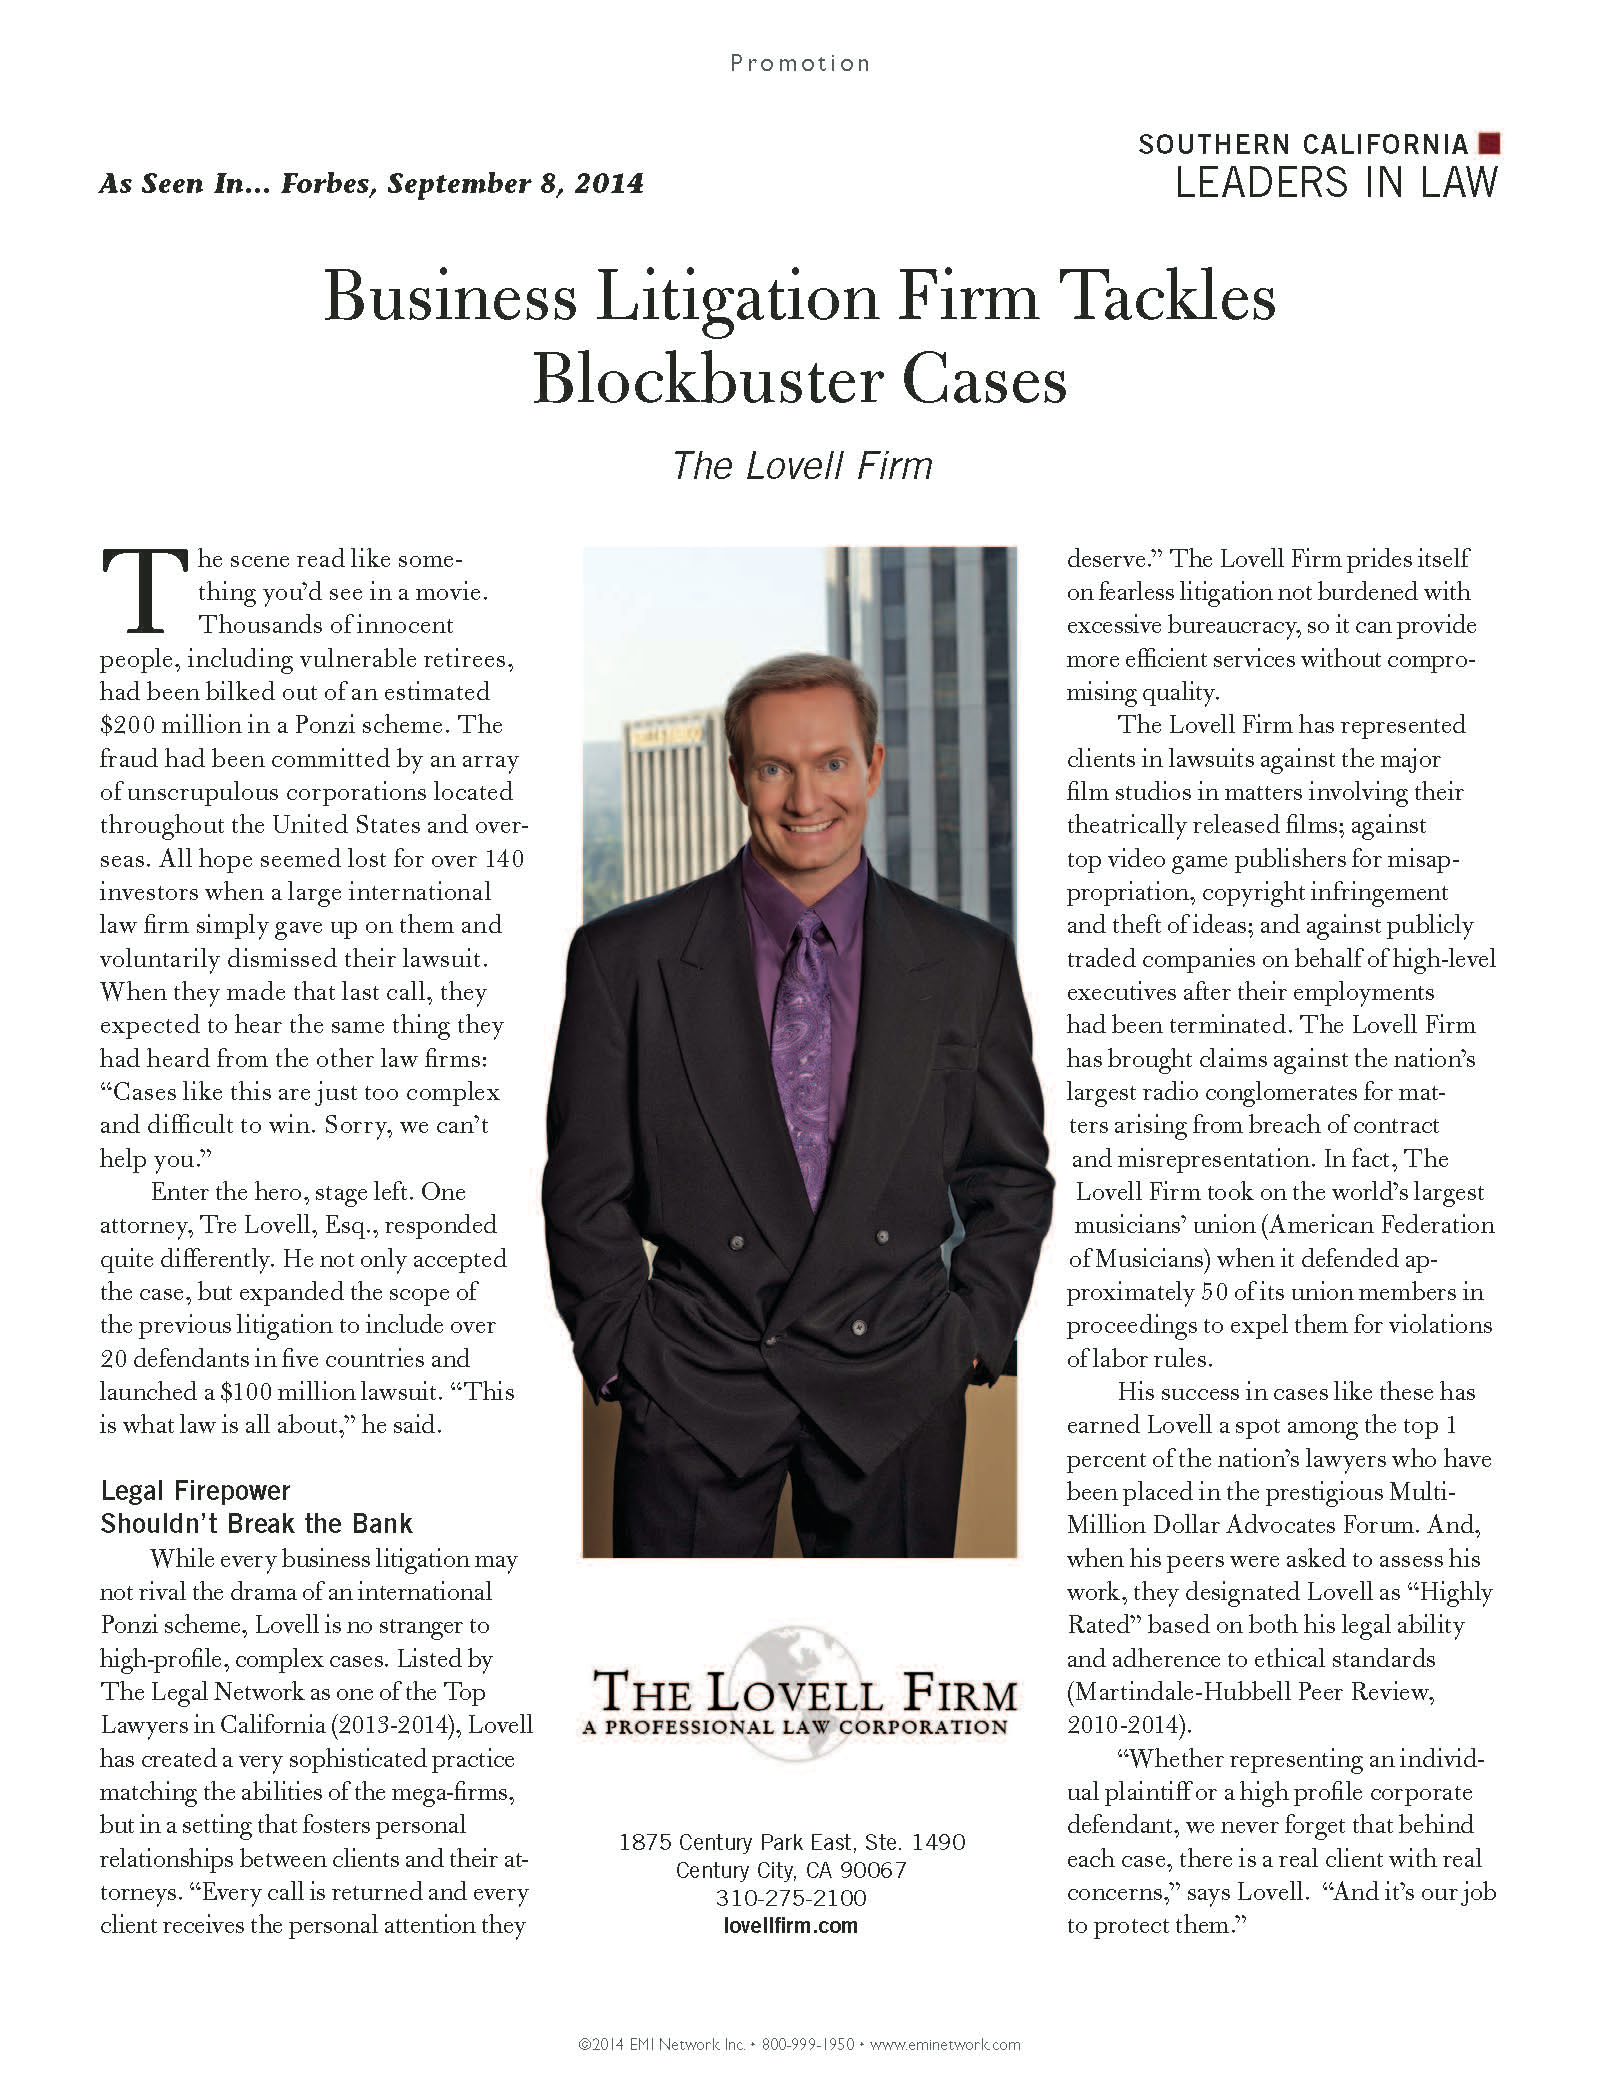 Featured in Forbes Magazine, September 8, 2014